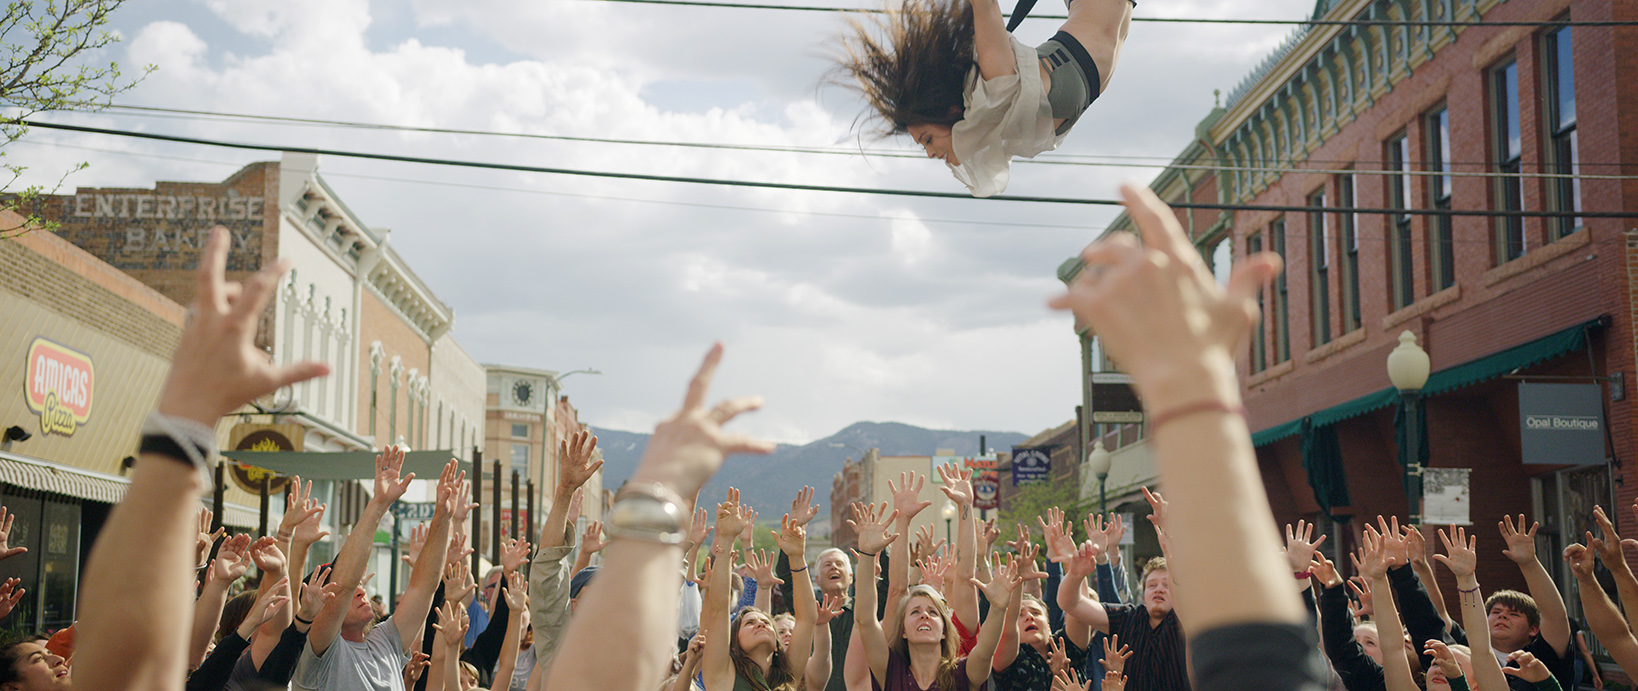 crowd goes wild-smaller